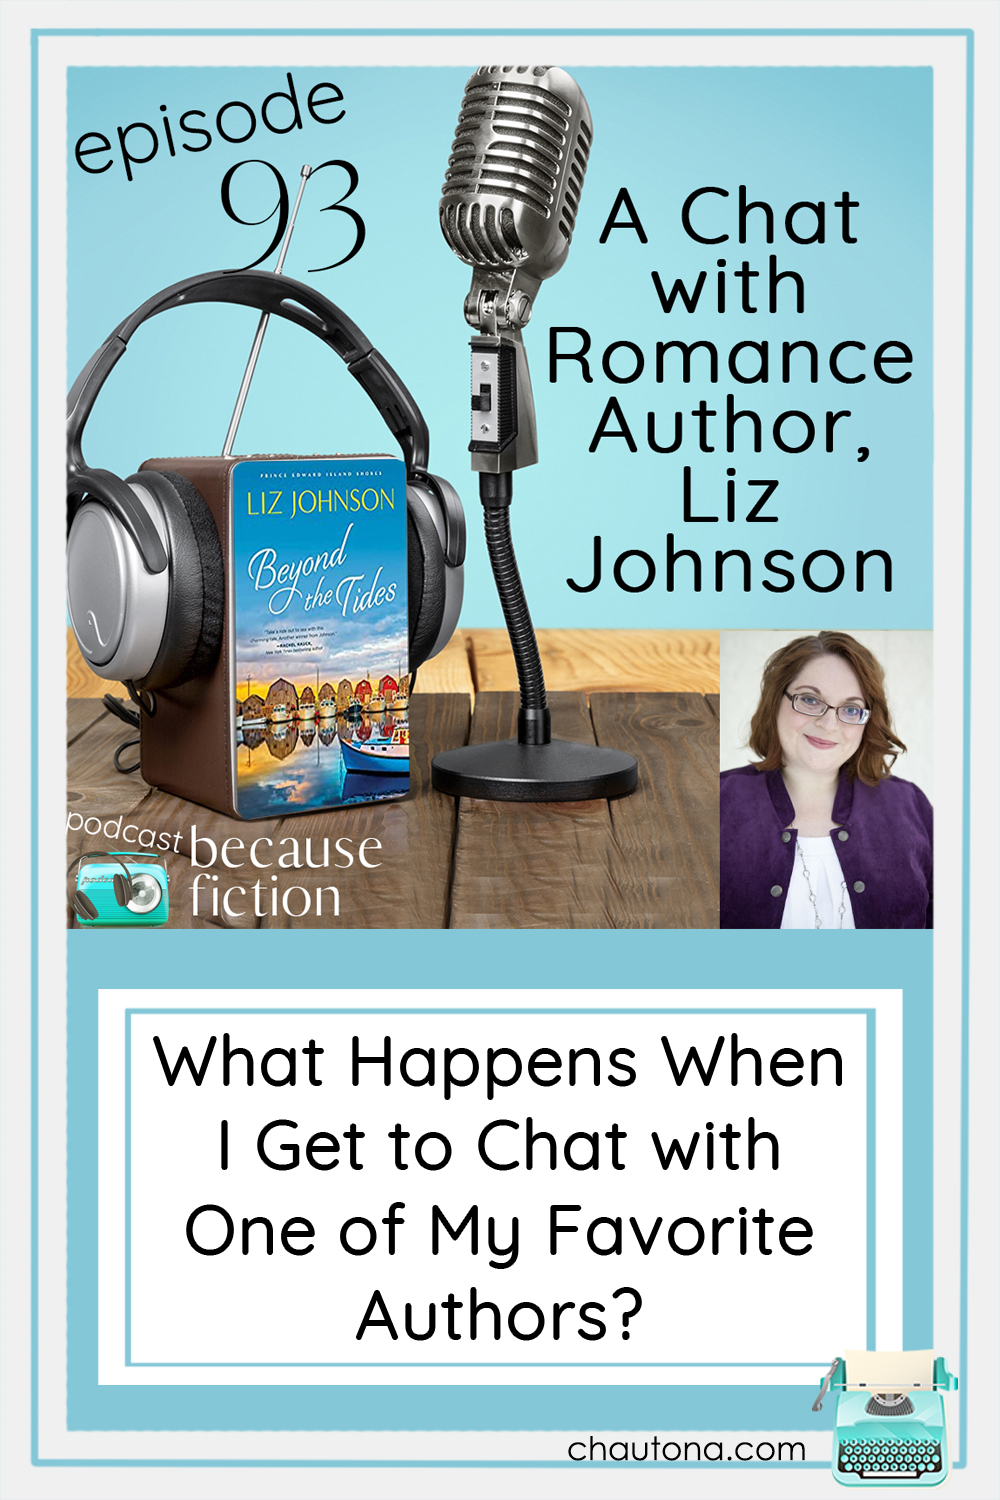 Liz Johnson and I finally sit down (okay, I was standing) and chat about her books, her inspiration, and the wonderful introductory book to her new series. via @chautonahavig